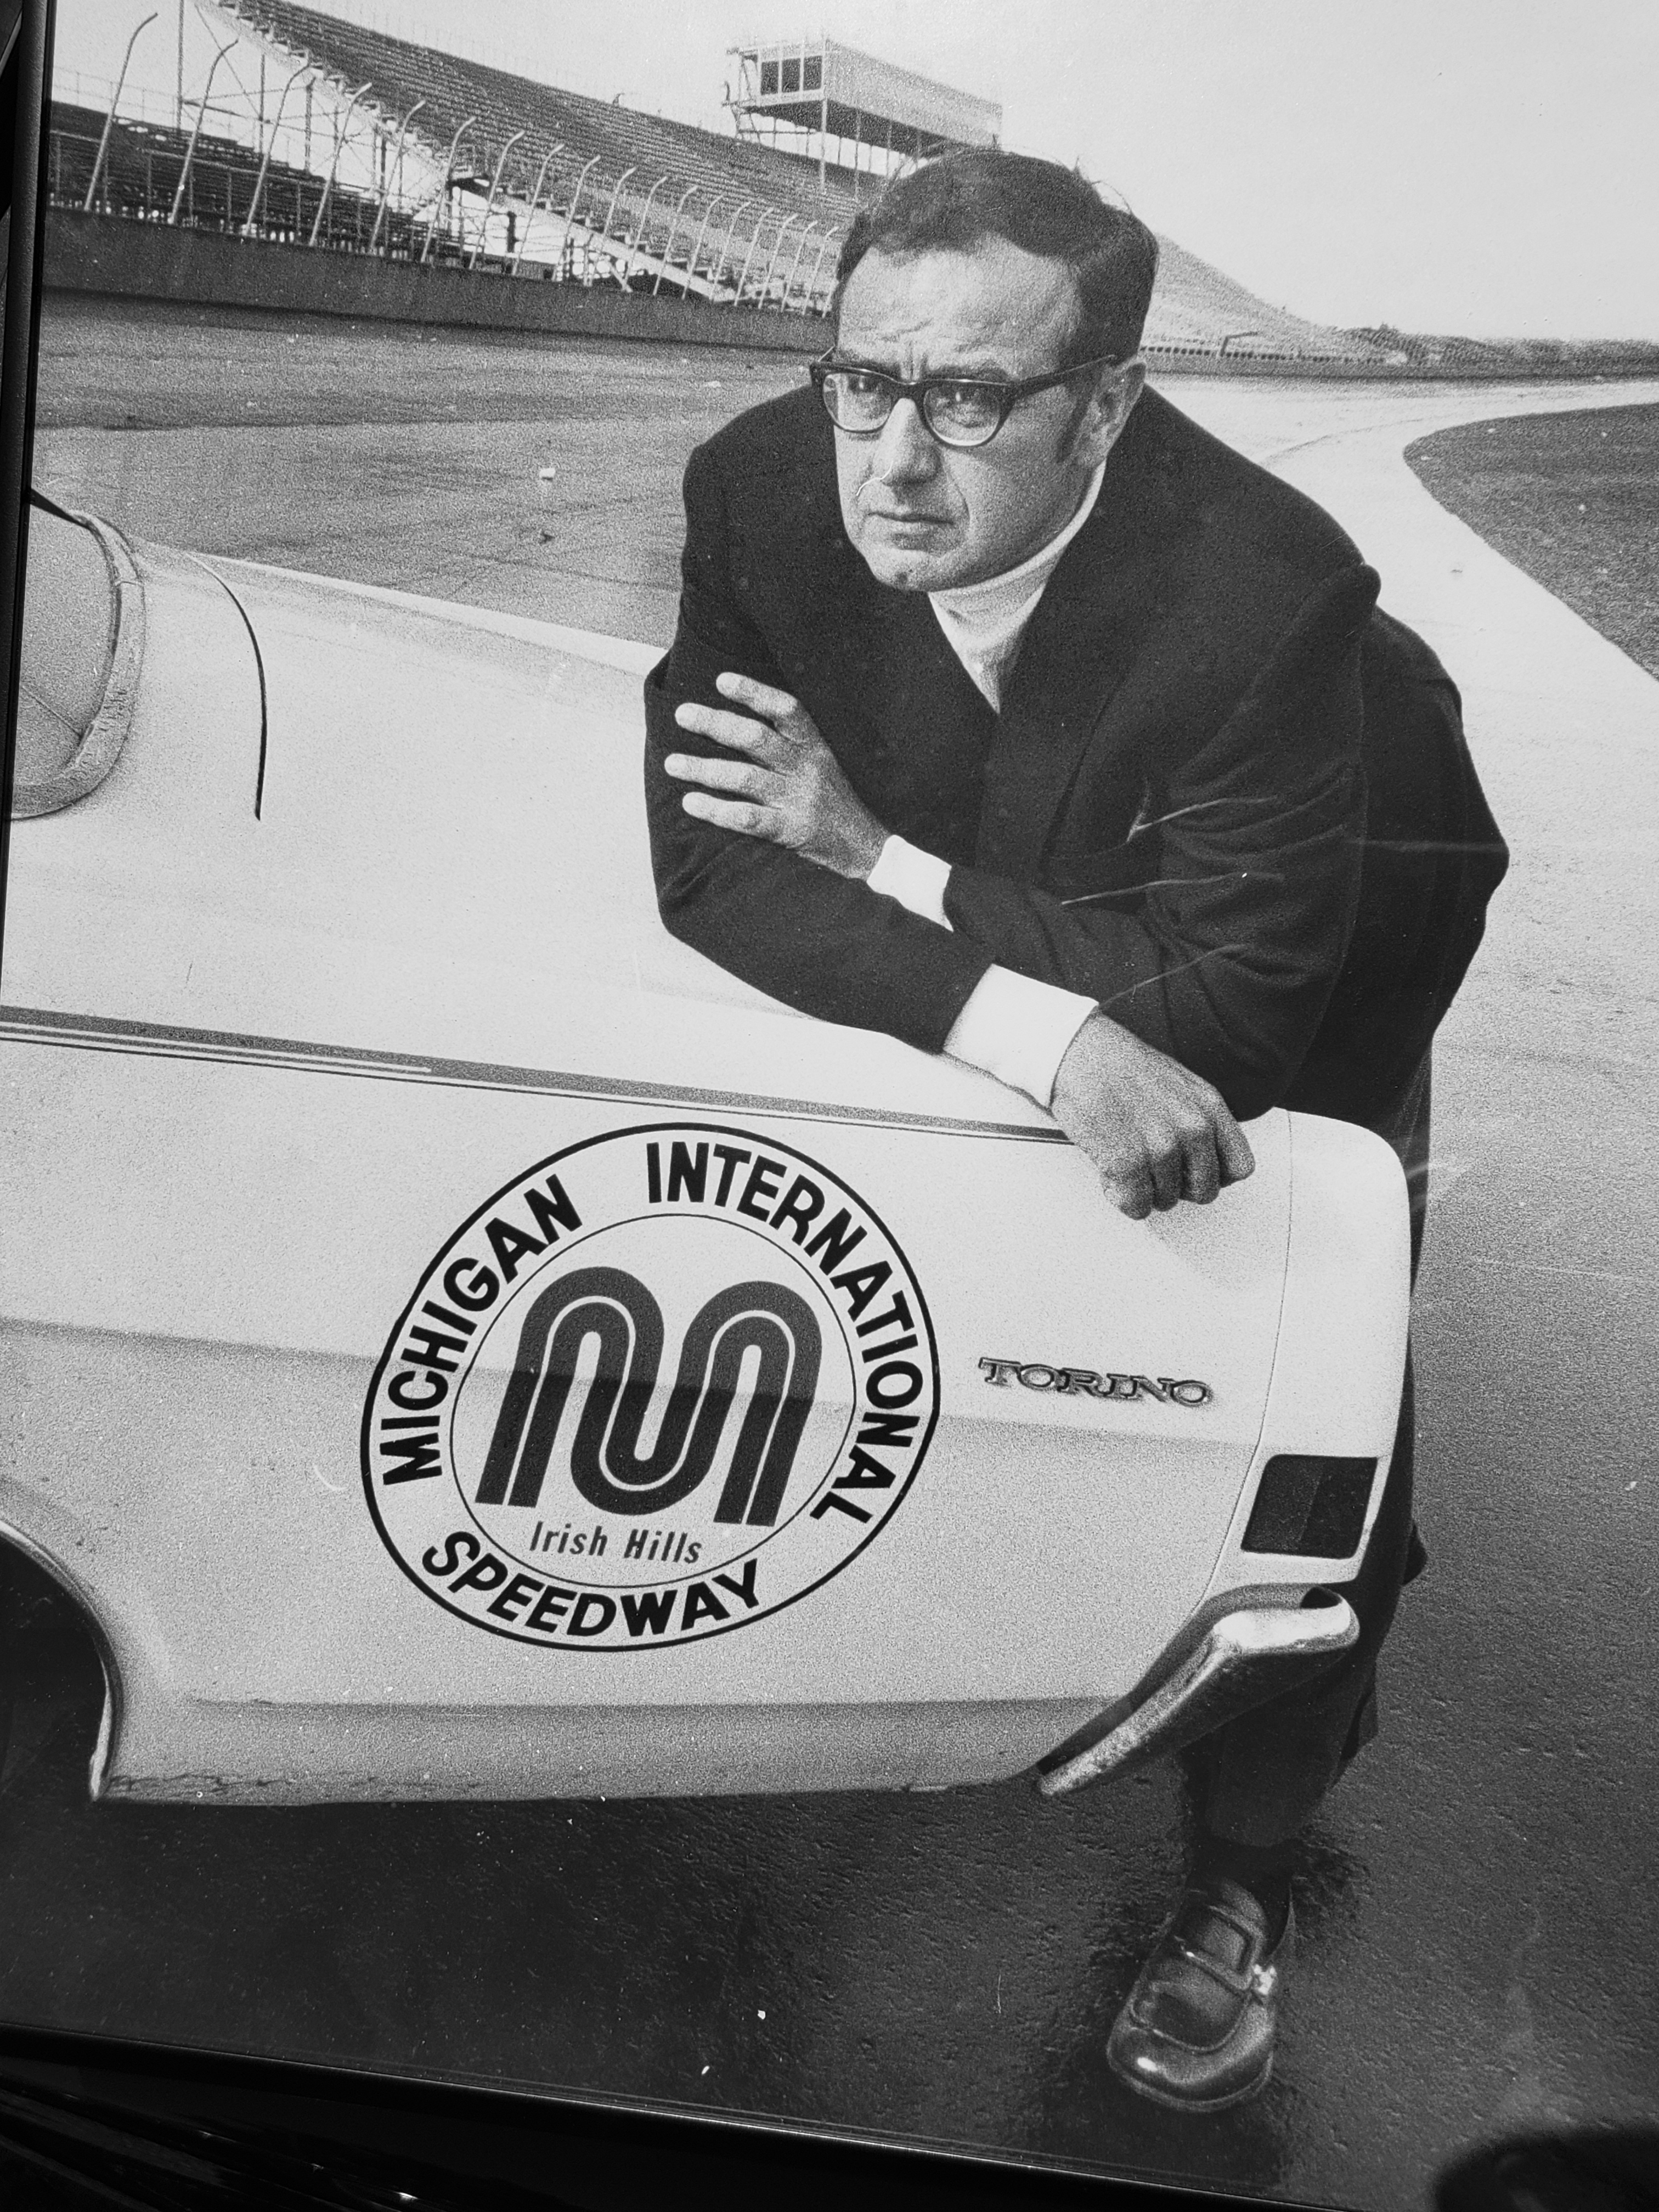 Lawrence LoPatin, seen leaning on a pace car, opened the Michigan International Speedway 50 years ago.